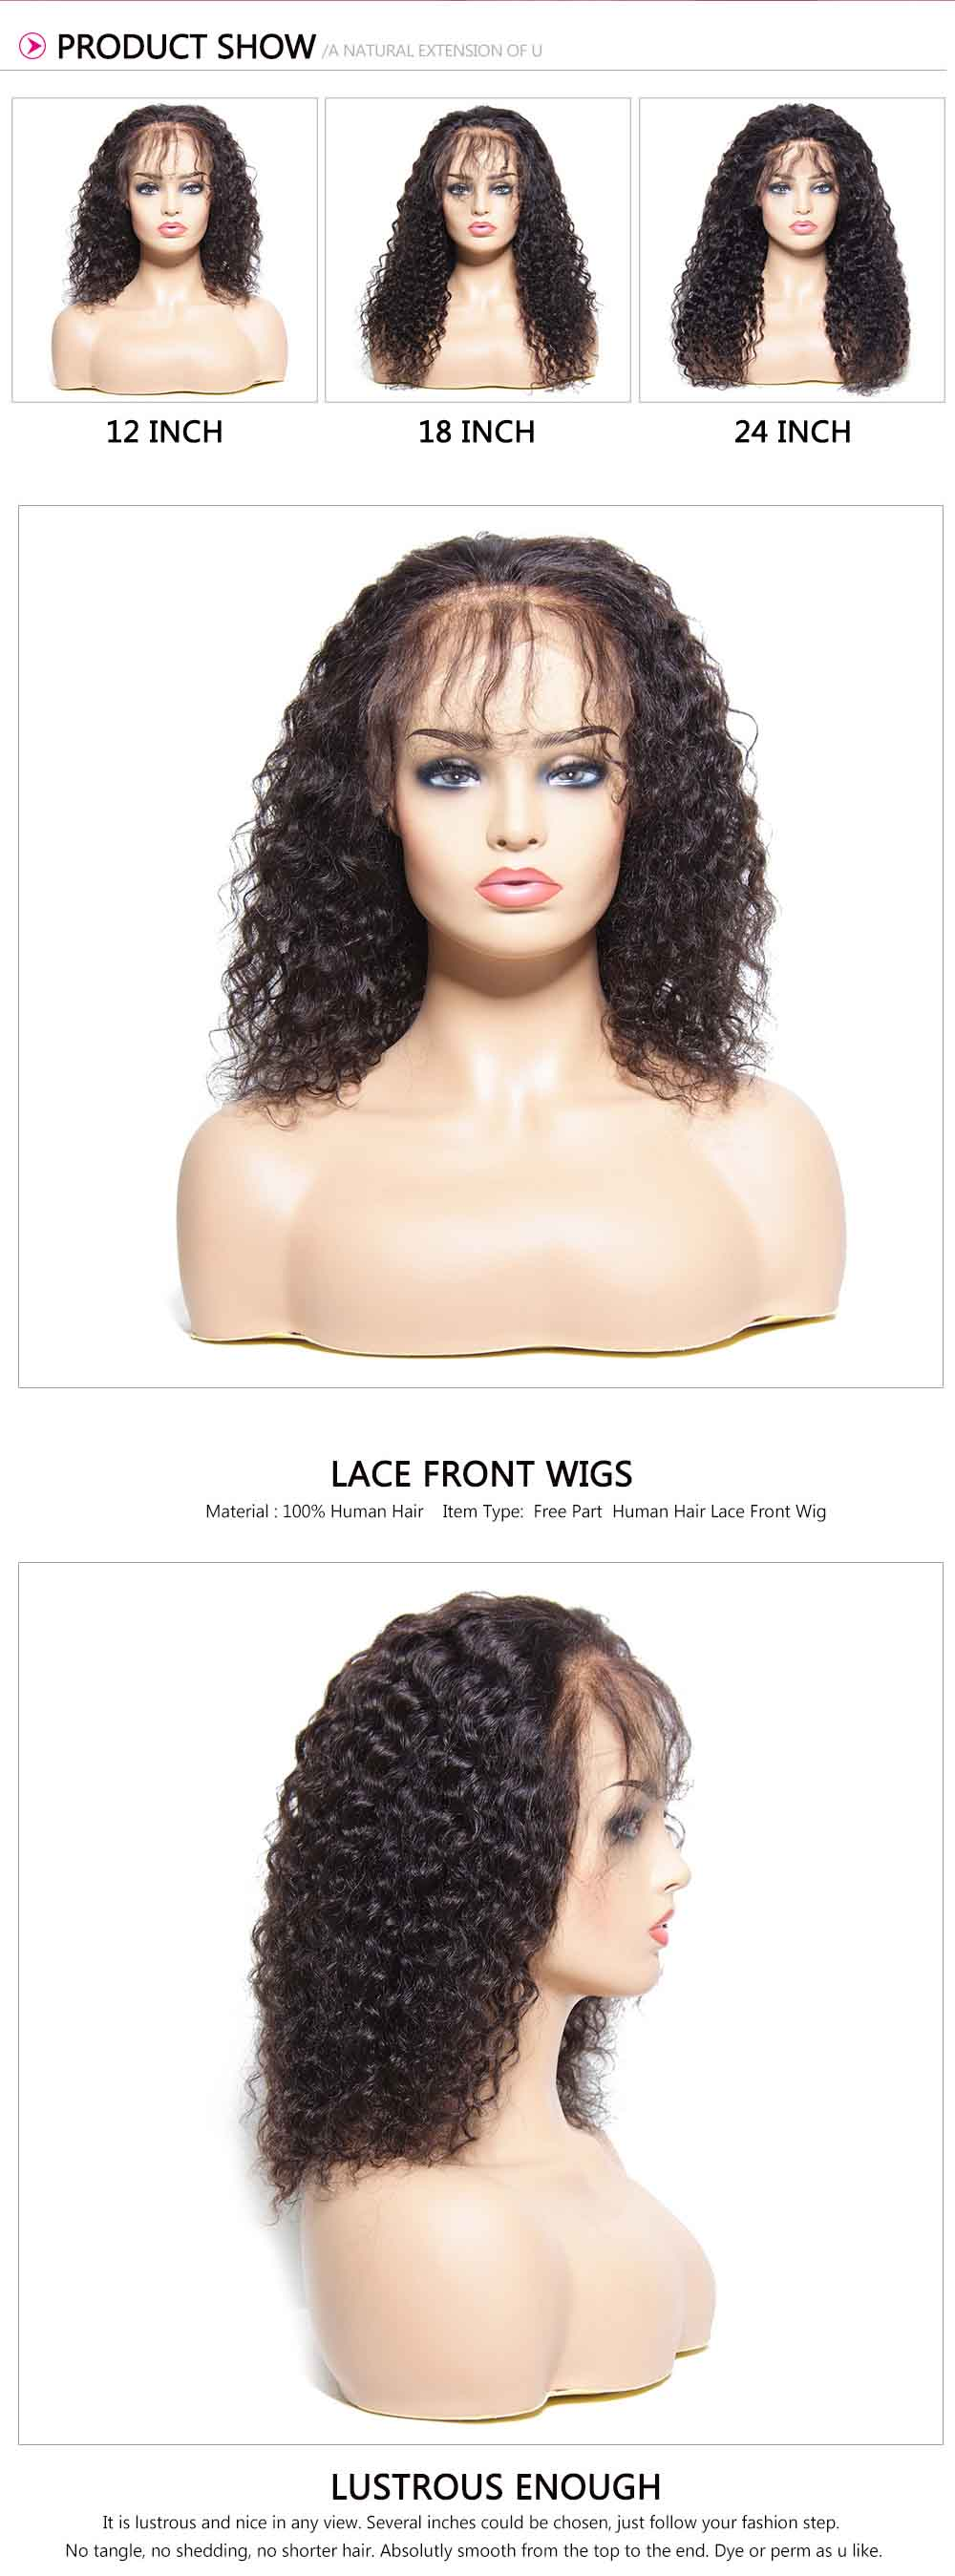 curly-human-hair-lace-front-wigs-1